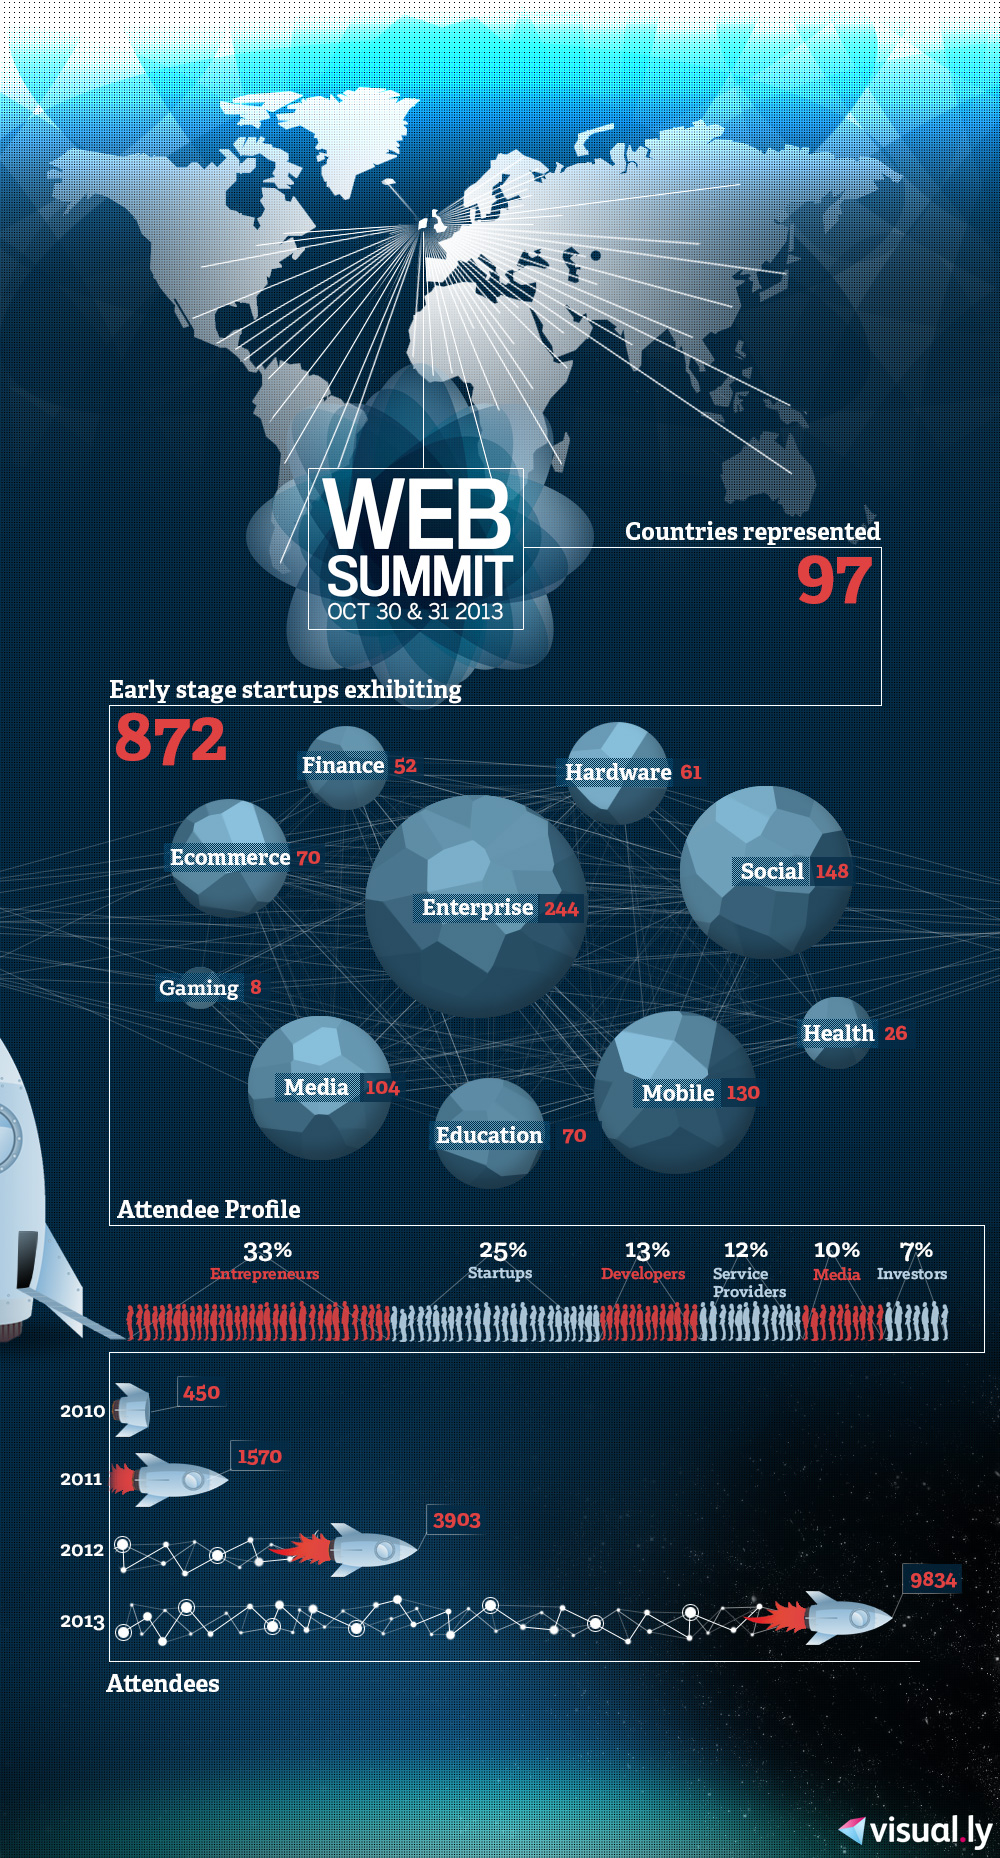 Web Summit 2013 infographic facts and stats